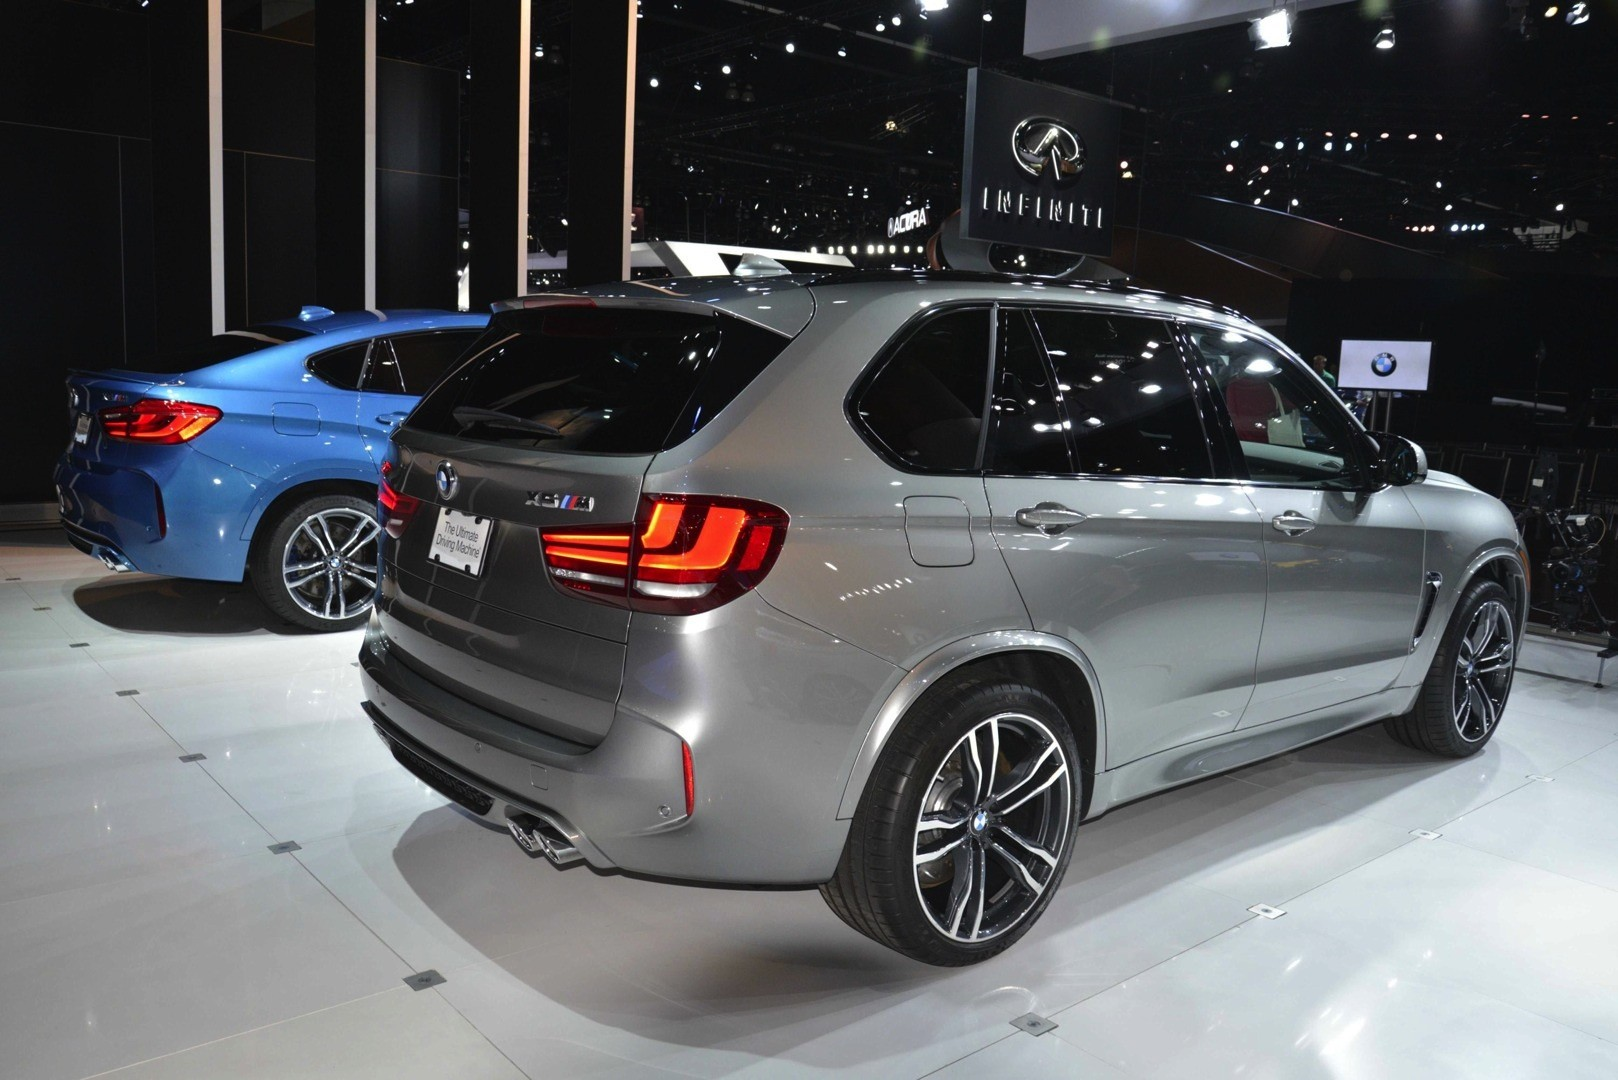 Bmw X5 M And X6 M Show Up In La With New Colors Live